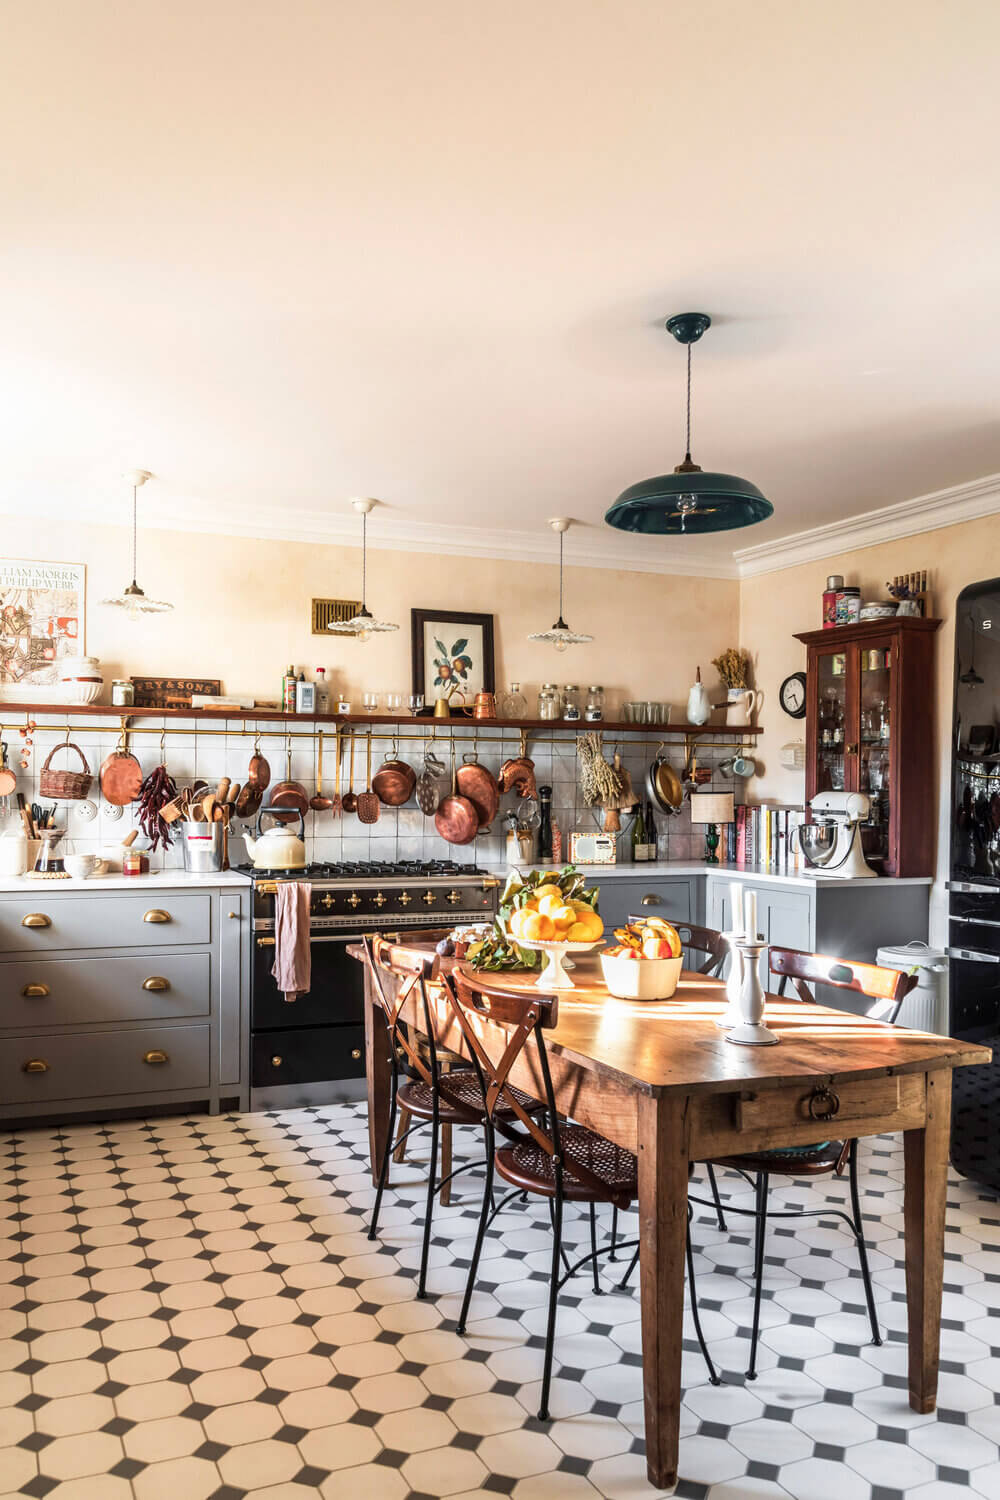 A Cozy Cluttered French-Style Kitchen by deVOL